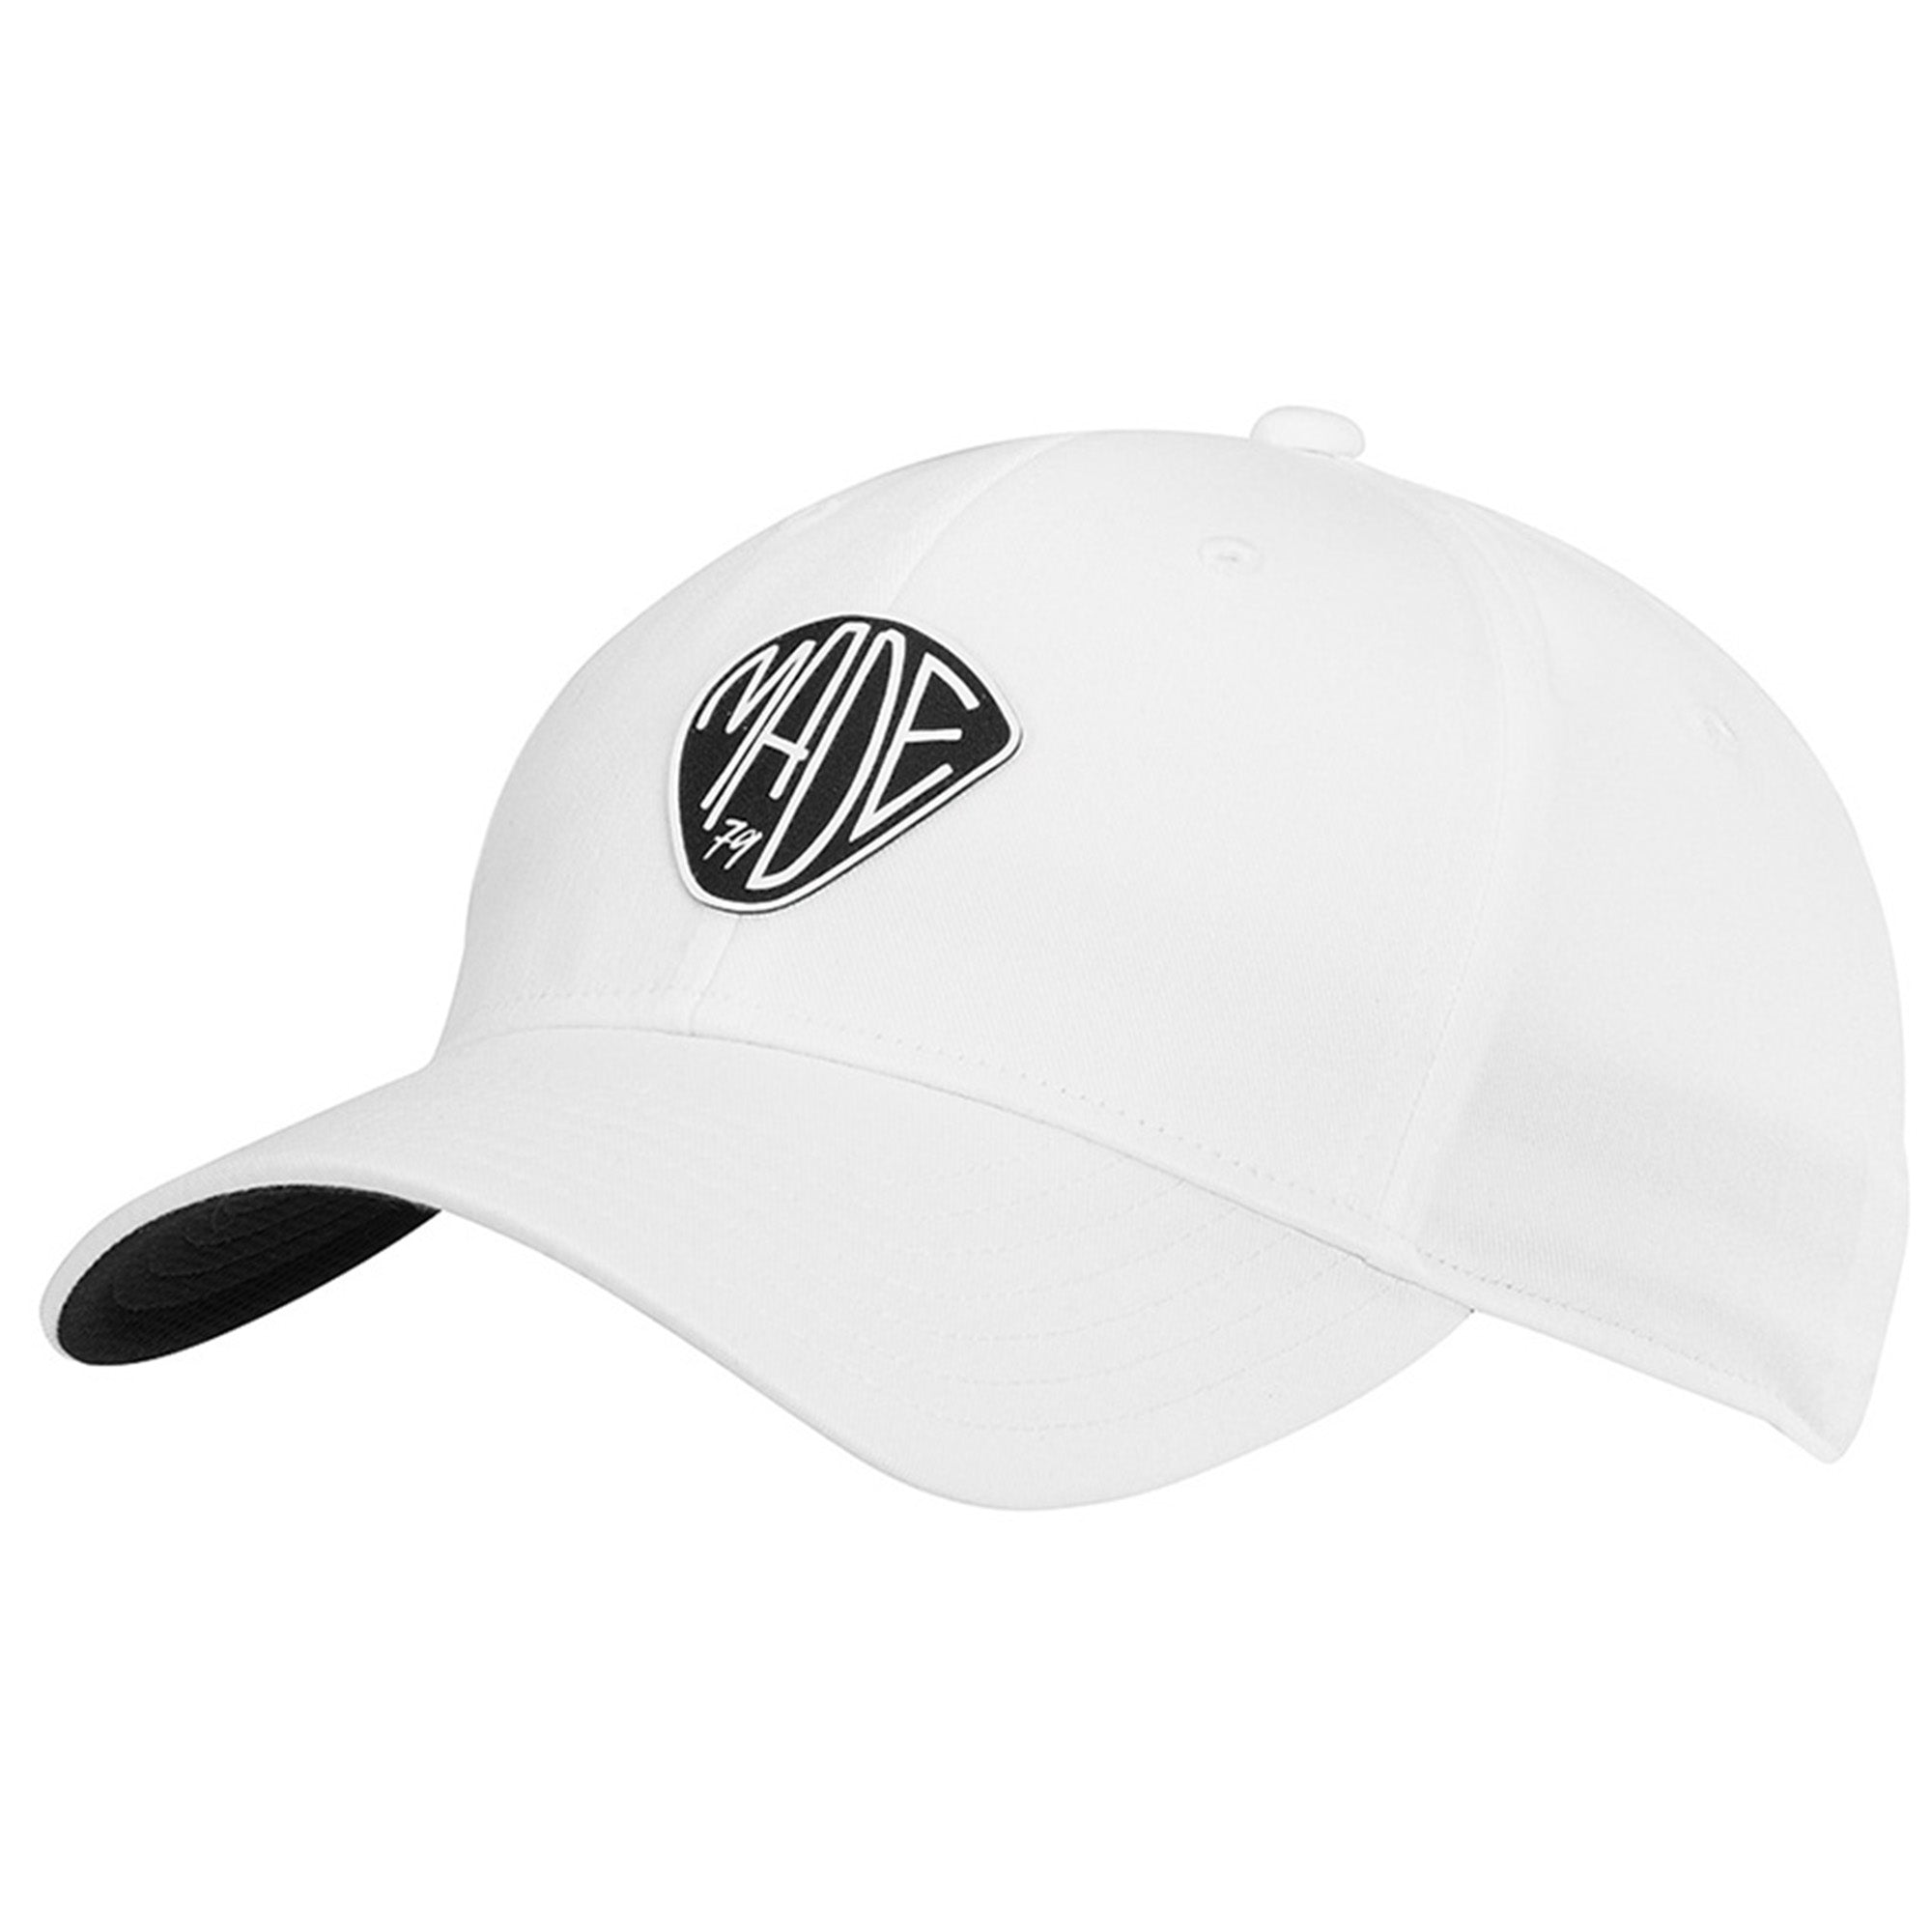 TaylorMade Golf Lifestyle Made 79 Cap N77615